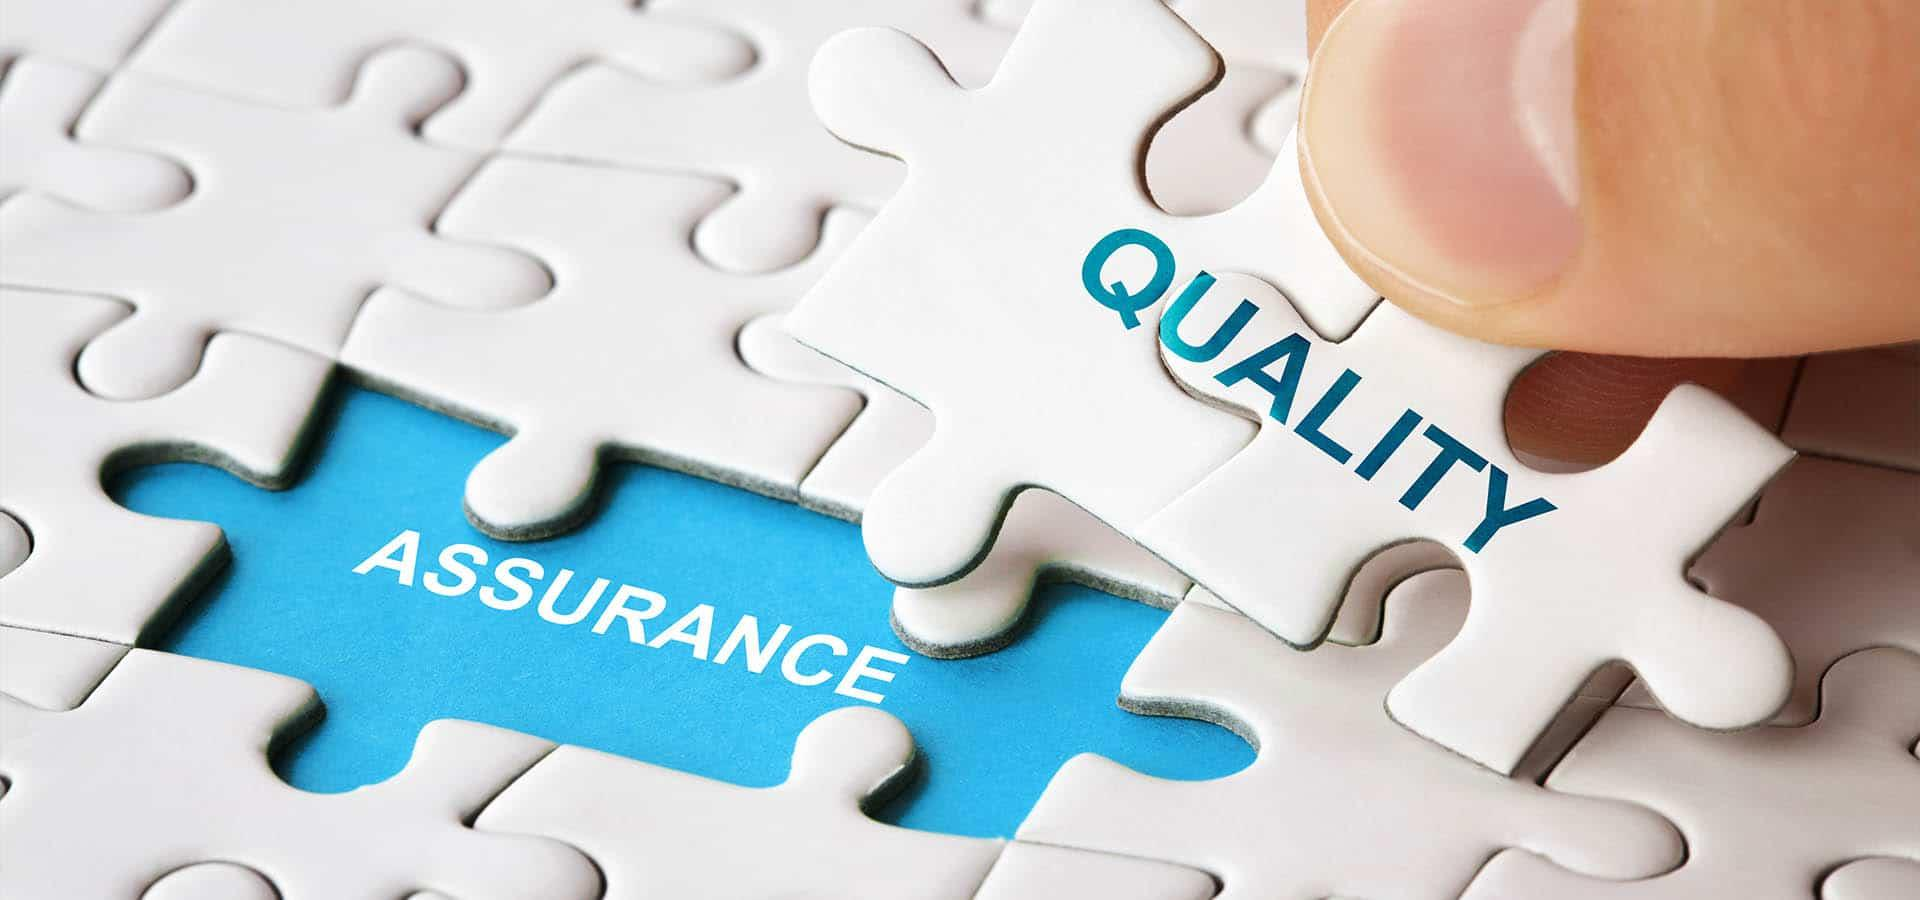 Quality Systems Consulting and Operational Quality Assurance